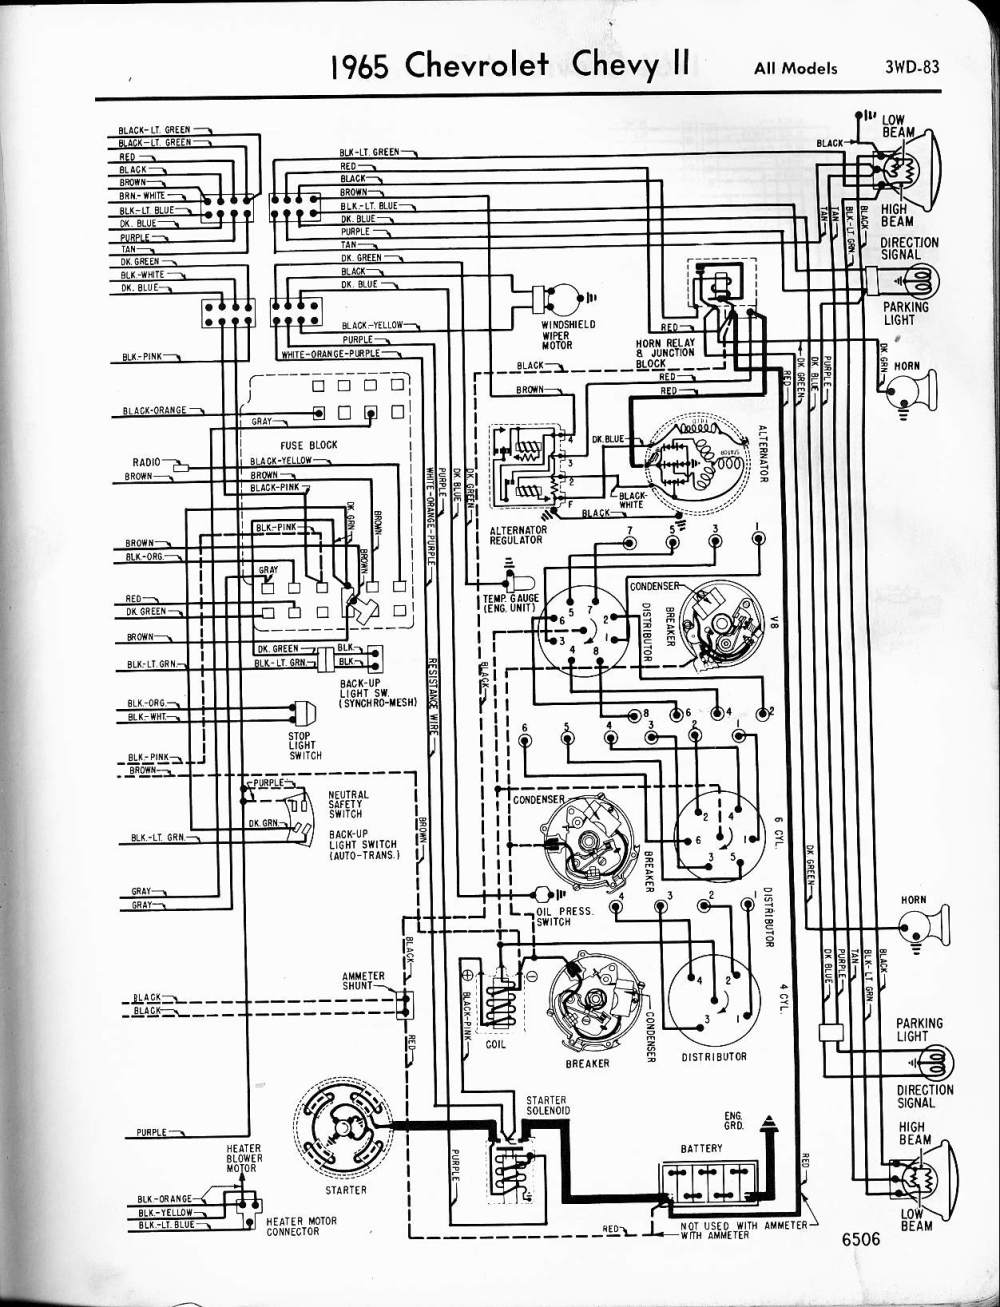 medium resolution of 57 65 chevy wiring diagrams 1965 chevy c20 wiring diagram 1965 chevy ii all models